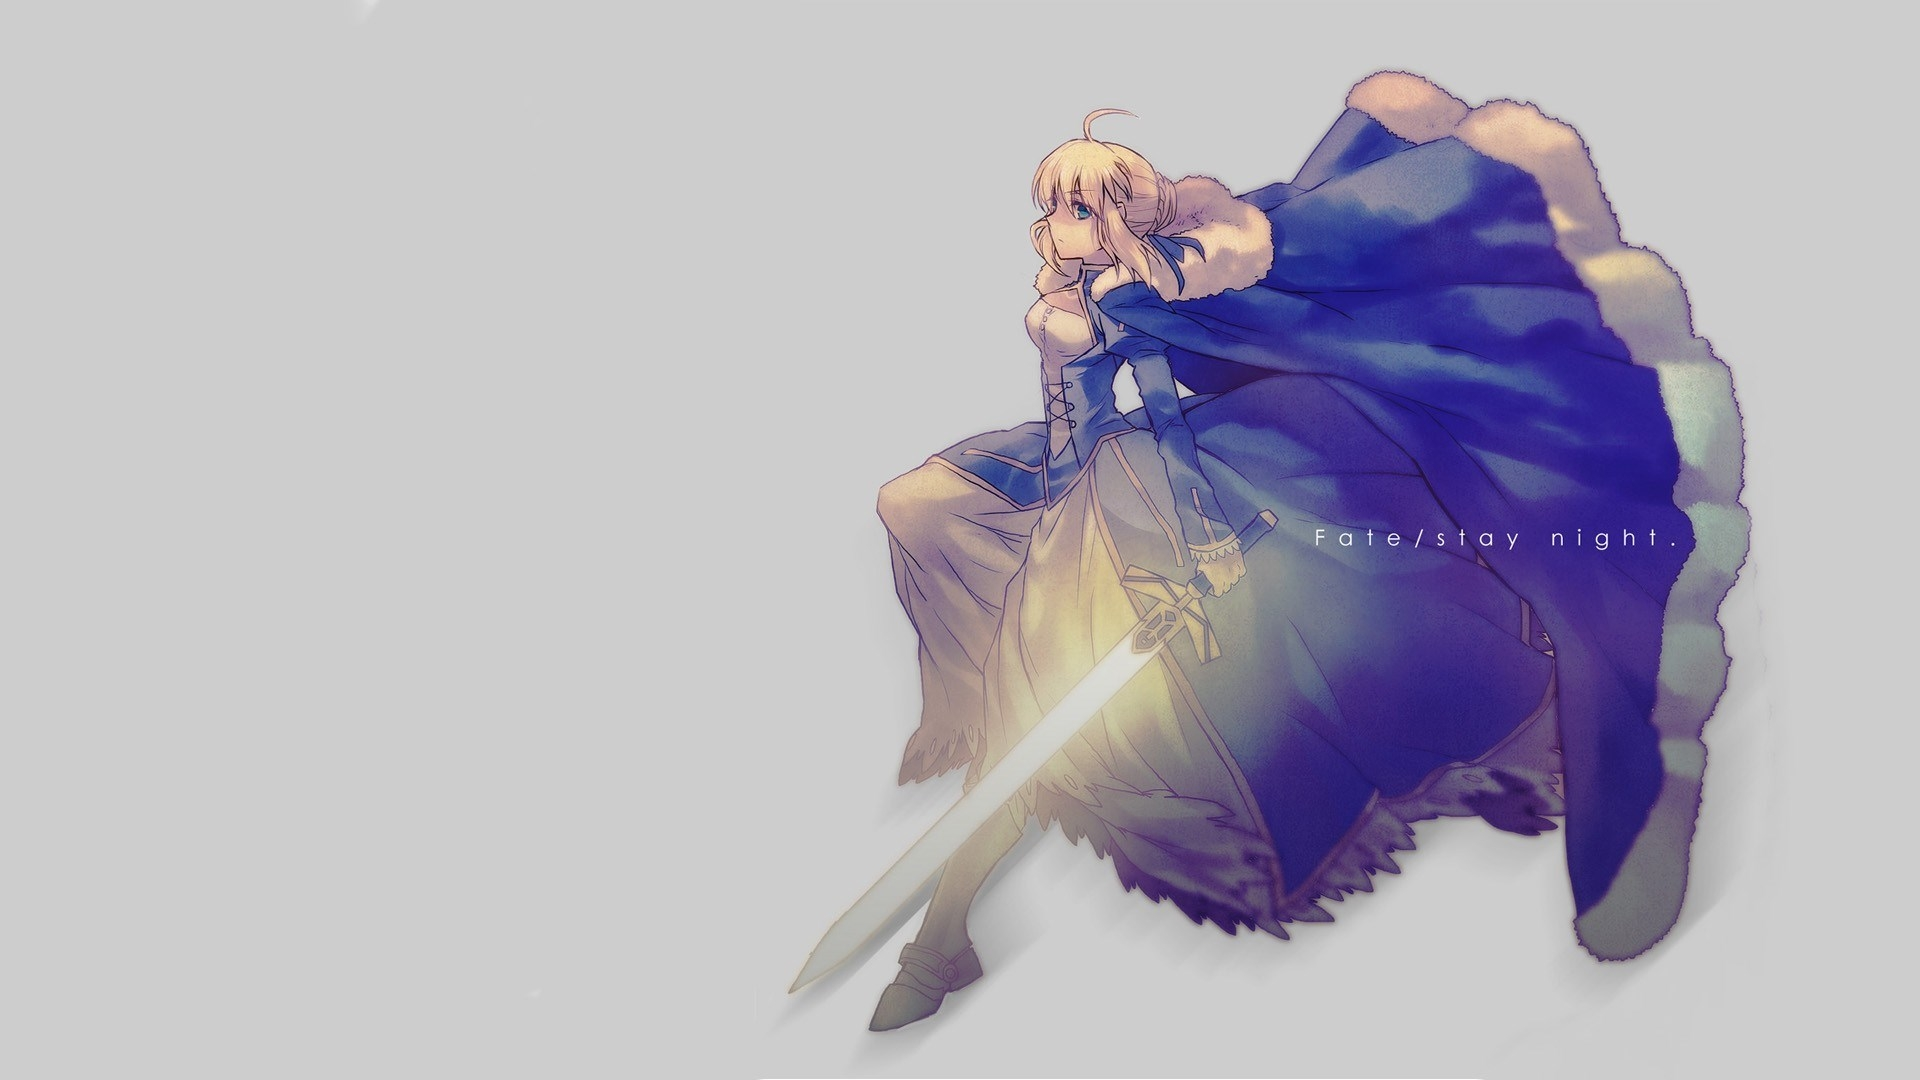 Desktop Backgrounds Fatestay Night Wallpaper Kalem Bush 2017 Fate Stay ...